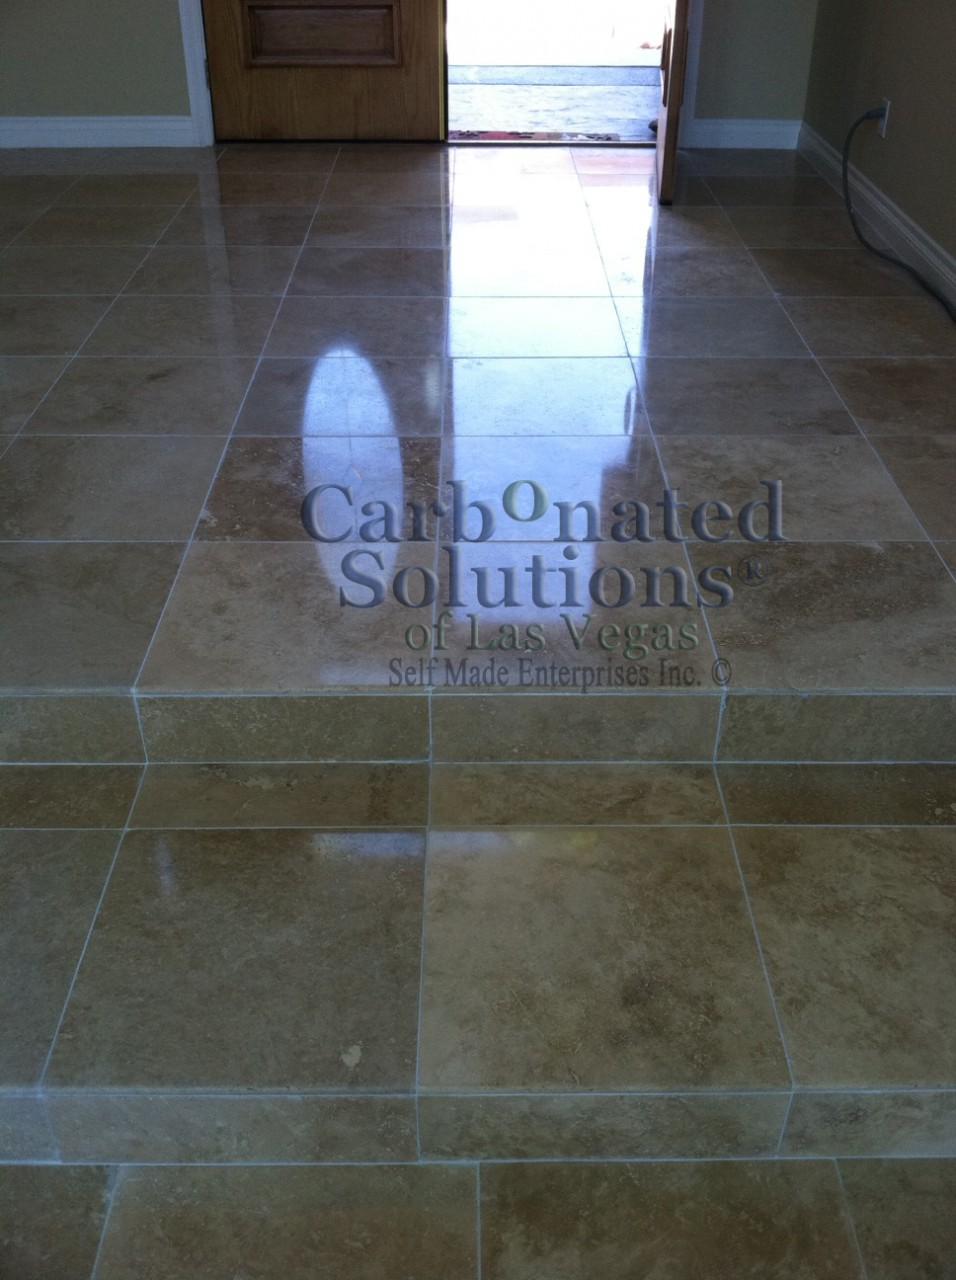 Natural stone cleaning sealing polishing las vegas carbonatedsolutionsoflasvegastravertine polishing las vegas and henderson nevada dailygadgetfo Images